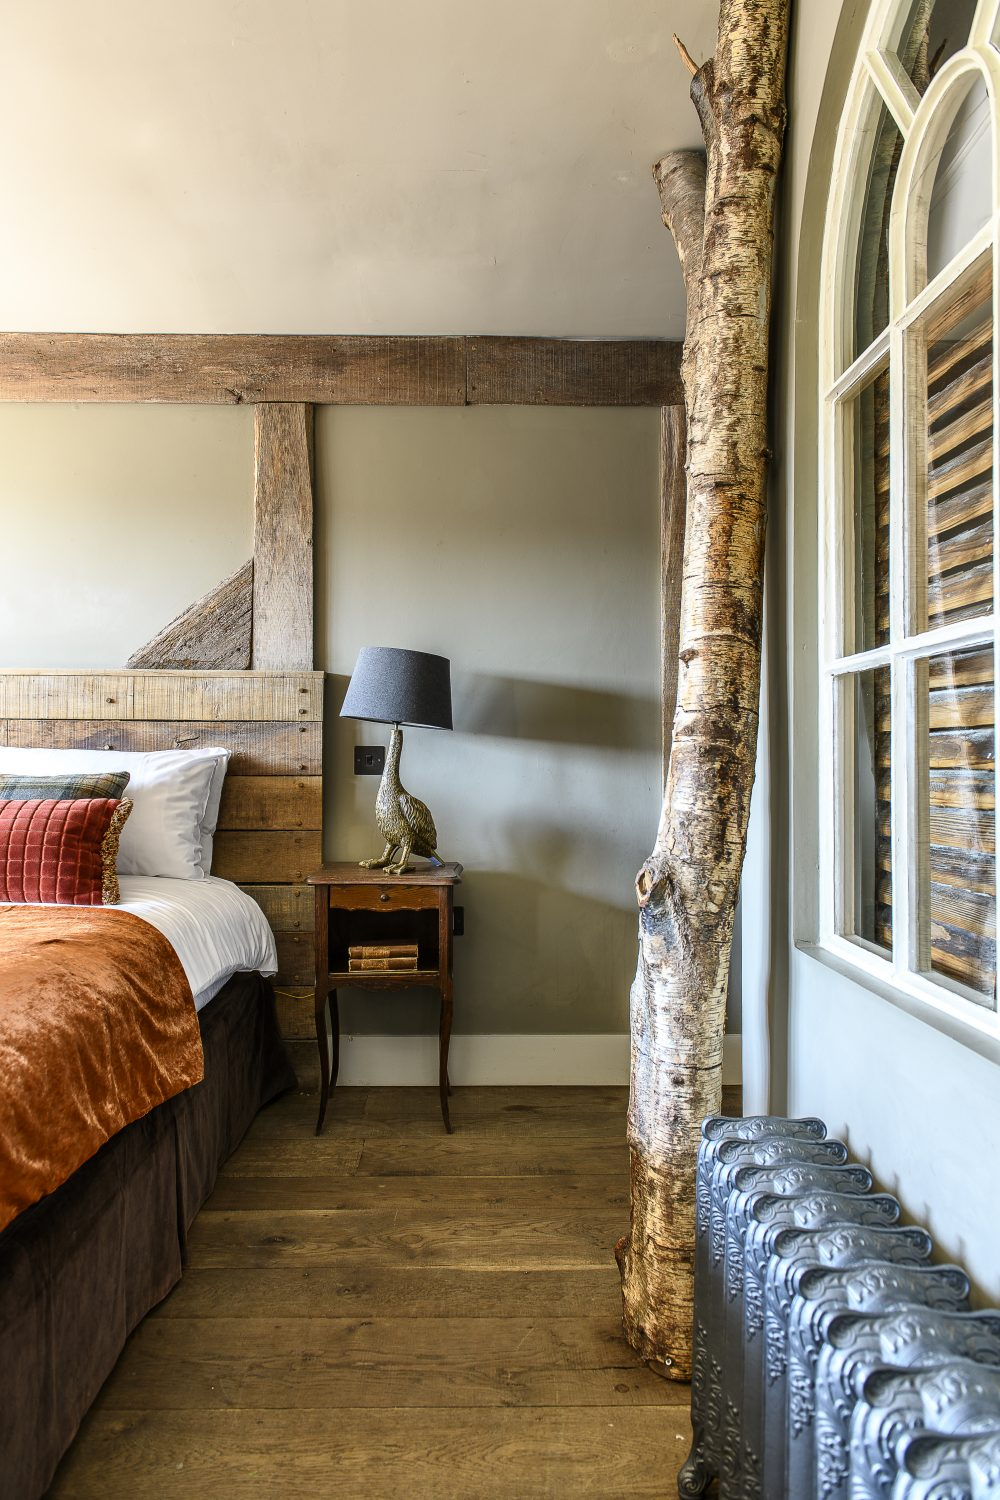 The Anything is Possible double bedroom features The Bell's signature 'inside' trees